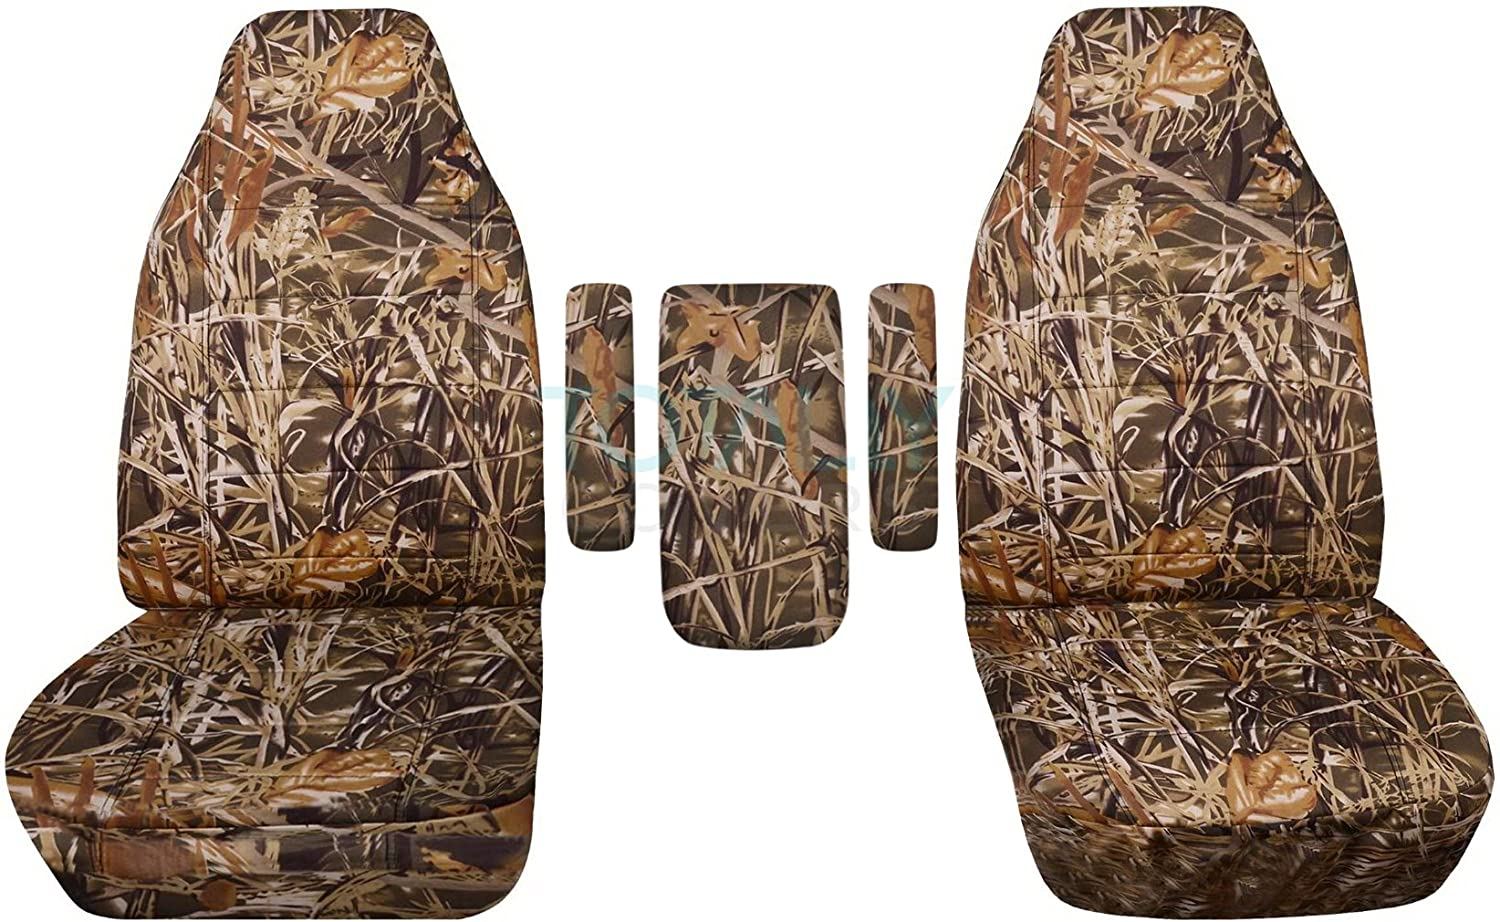 Totally Covers Compatible with 1999-2001 Ford F-150 F-250 F-350 Camo Truck Captains Chairs Seat Covers w 3 Armrest Covers (1 per Seat + Center): Wetland Camouflage (16 Prints) F-Series F150 F250 F350